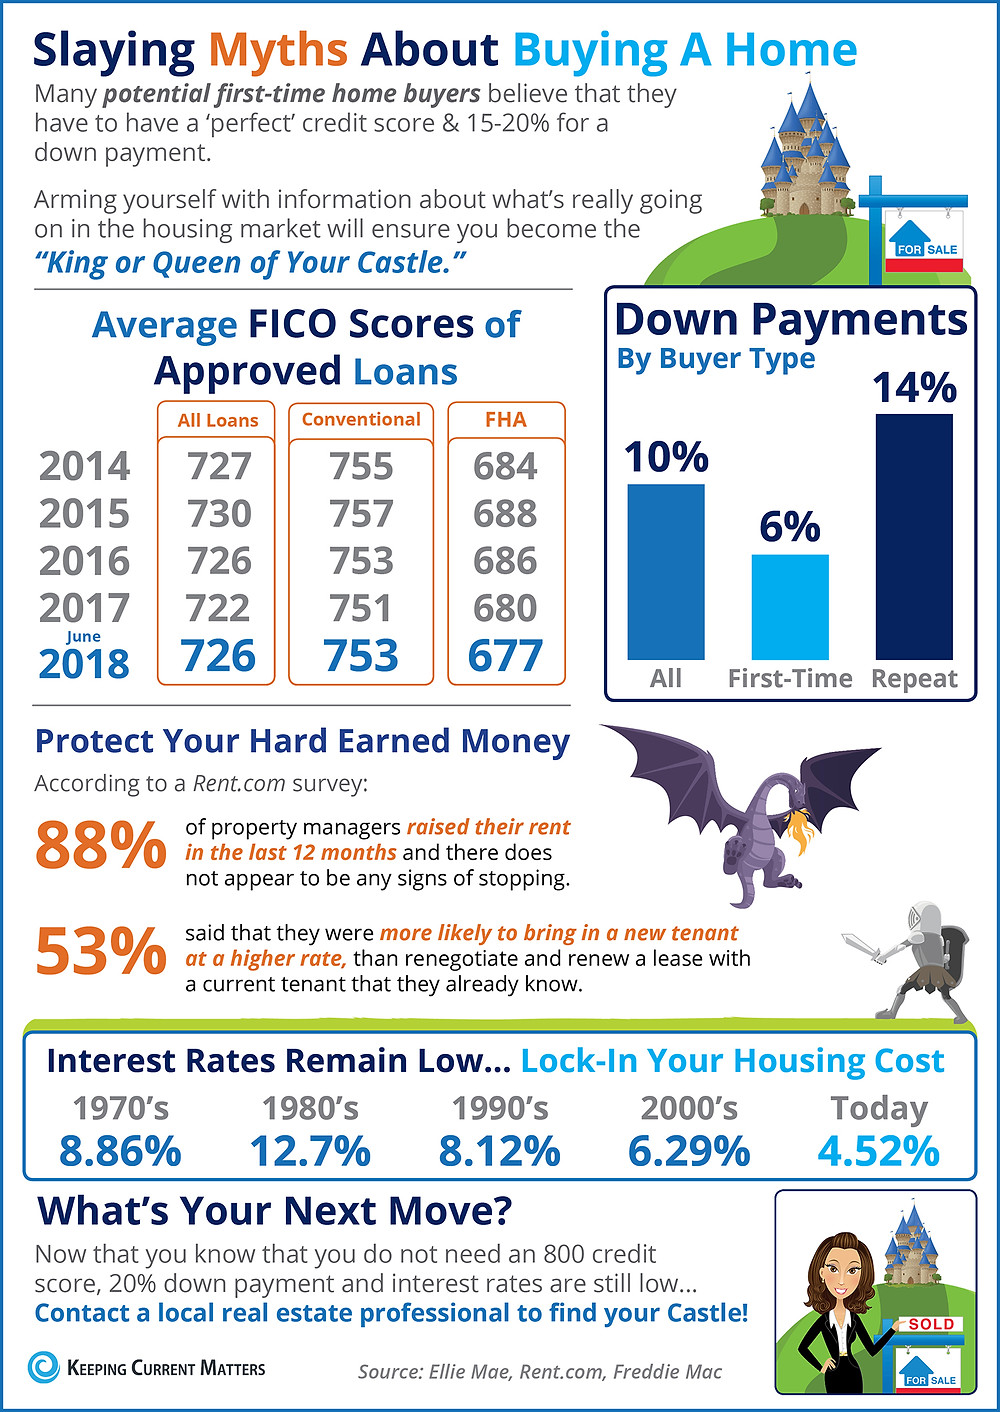 Home Buying Myths Slayed [INFOGRAPHIC]   Keeping Current Matters